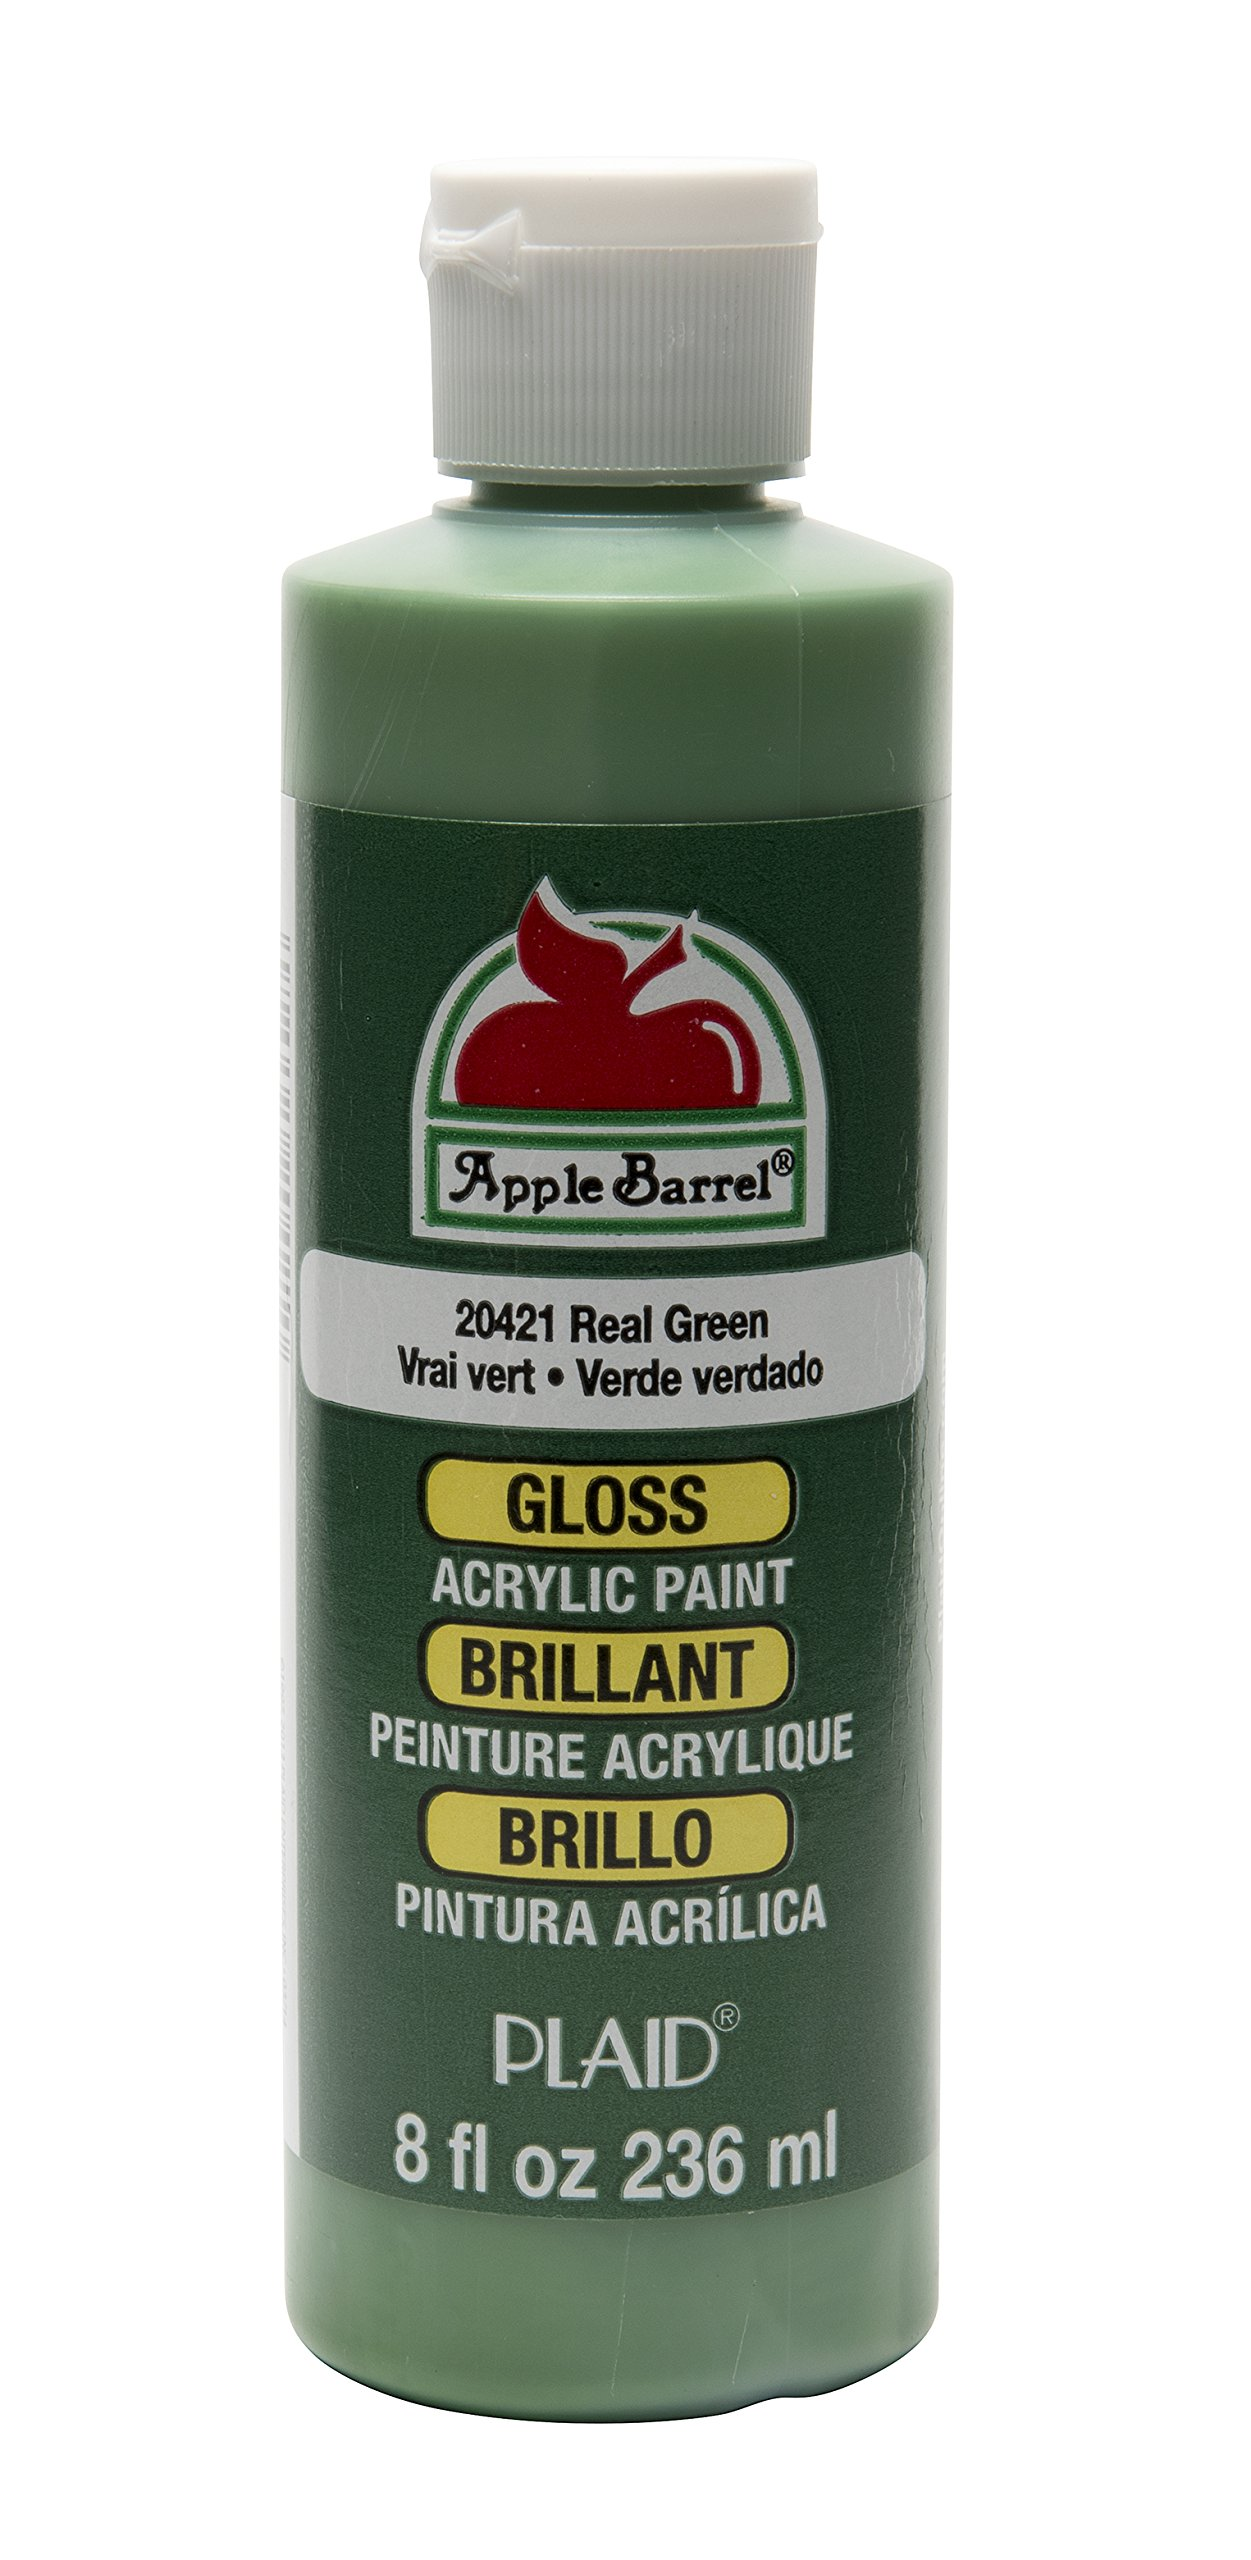 Apple Barrel Gloss Acrylic Paint in Assorted Colors (8 oz), K20421 Gloss Real Green by Apple Barrel